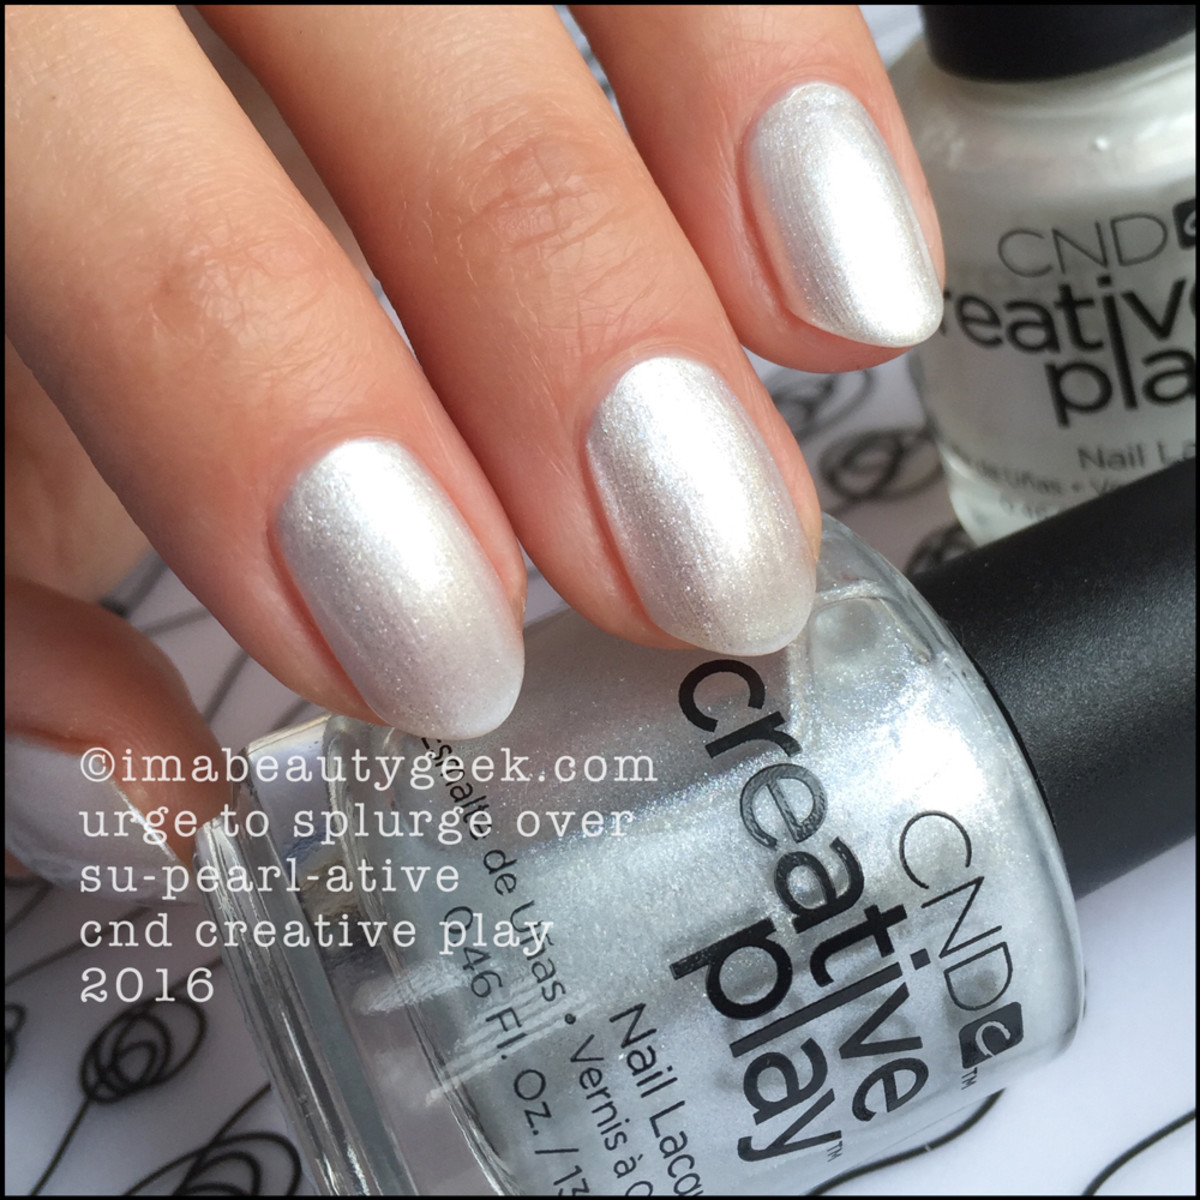 CND Creative Play Urge to Splurge over Supearlative_CND Creative Play Nail Swatches